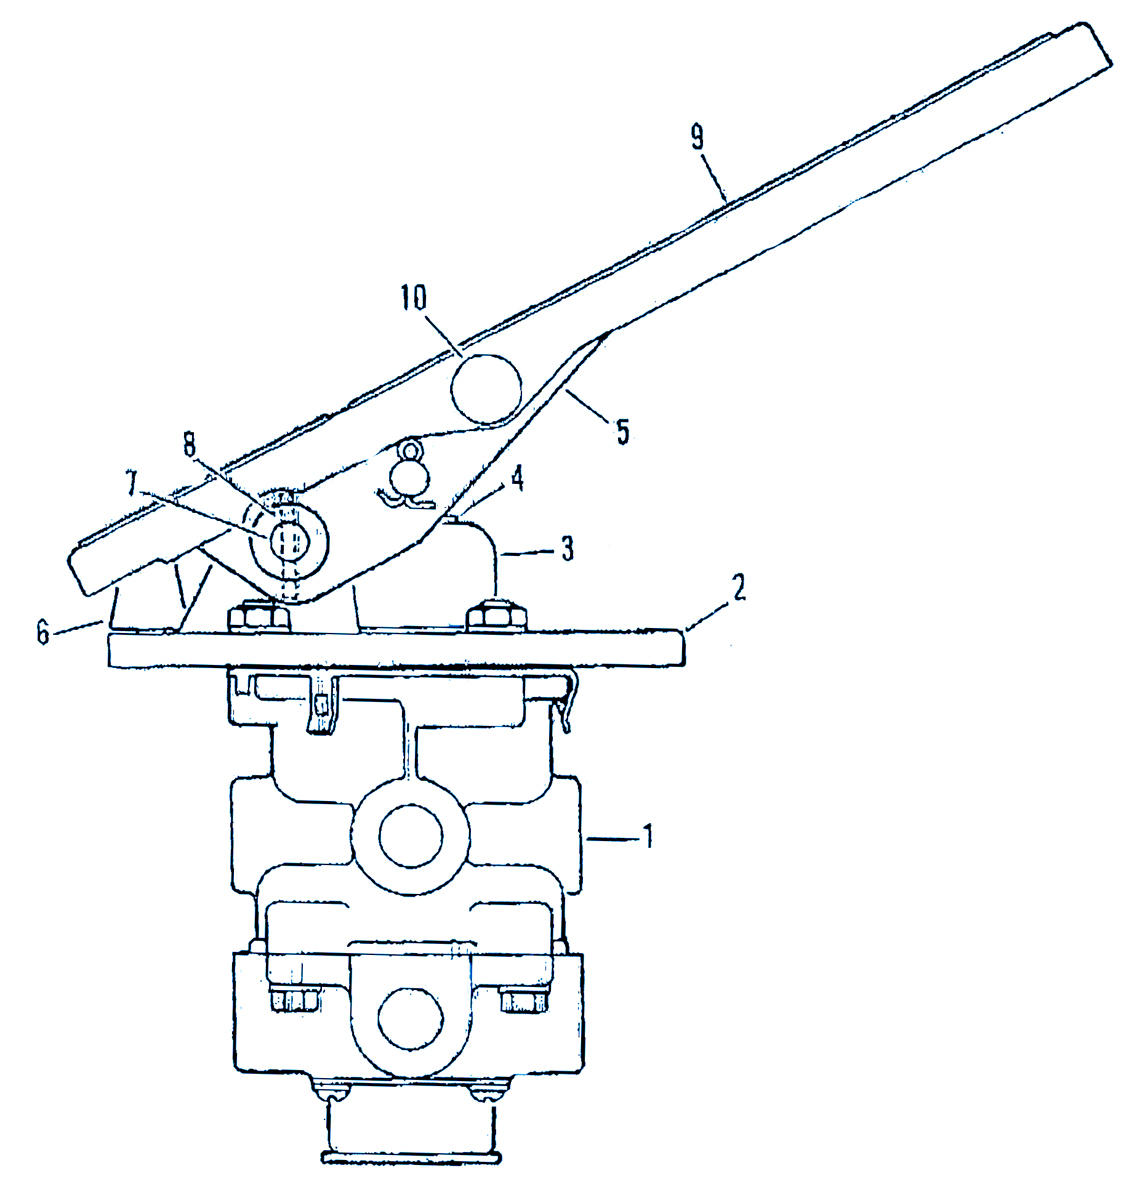 Air Brake Foot Valve Diagram Understanding The Treadle Valve And The Dangers It Can Cause Air